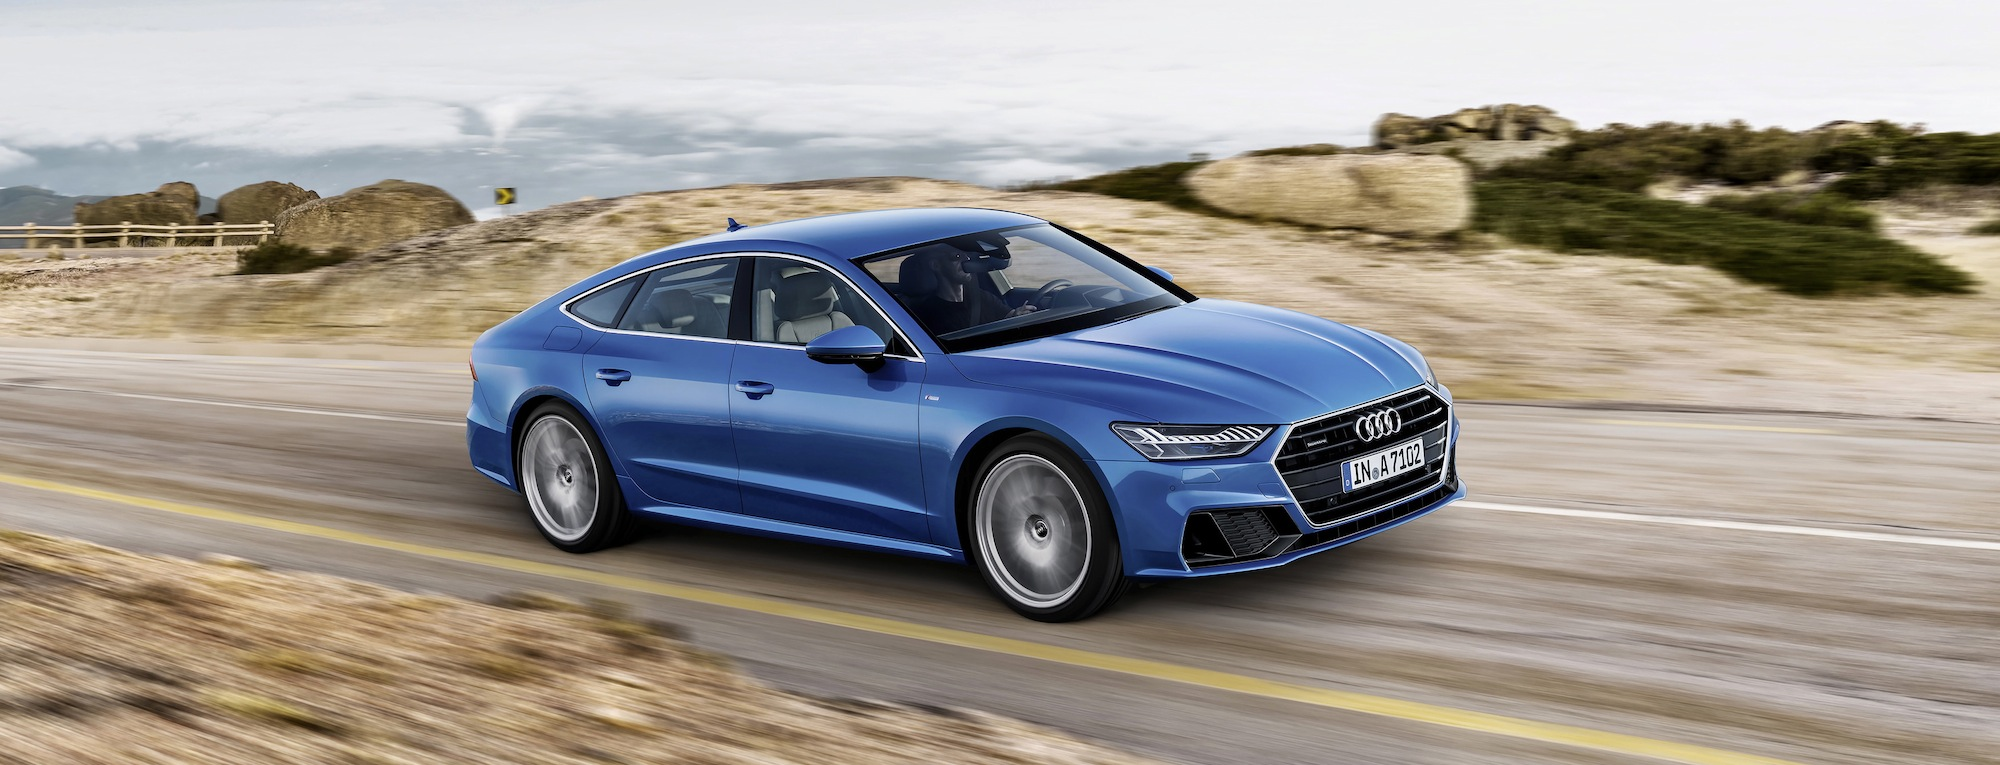 2019 Audi A7 Sportback: High Style Blends With High-Tech